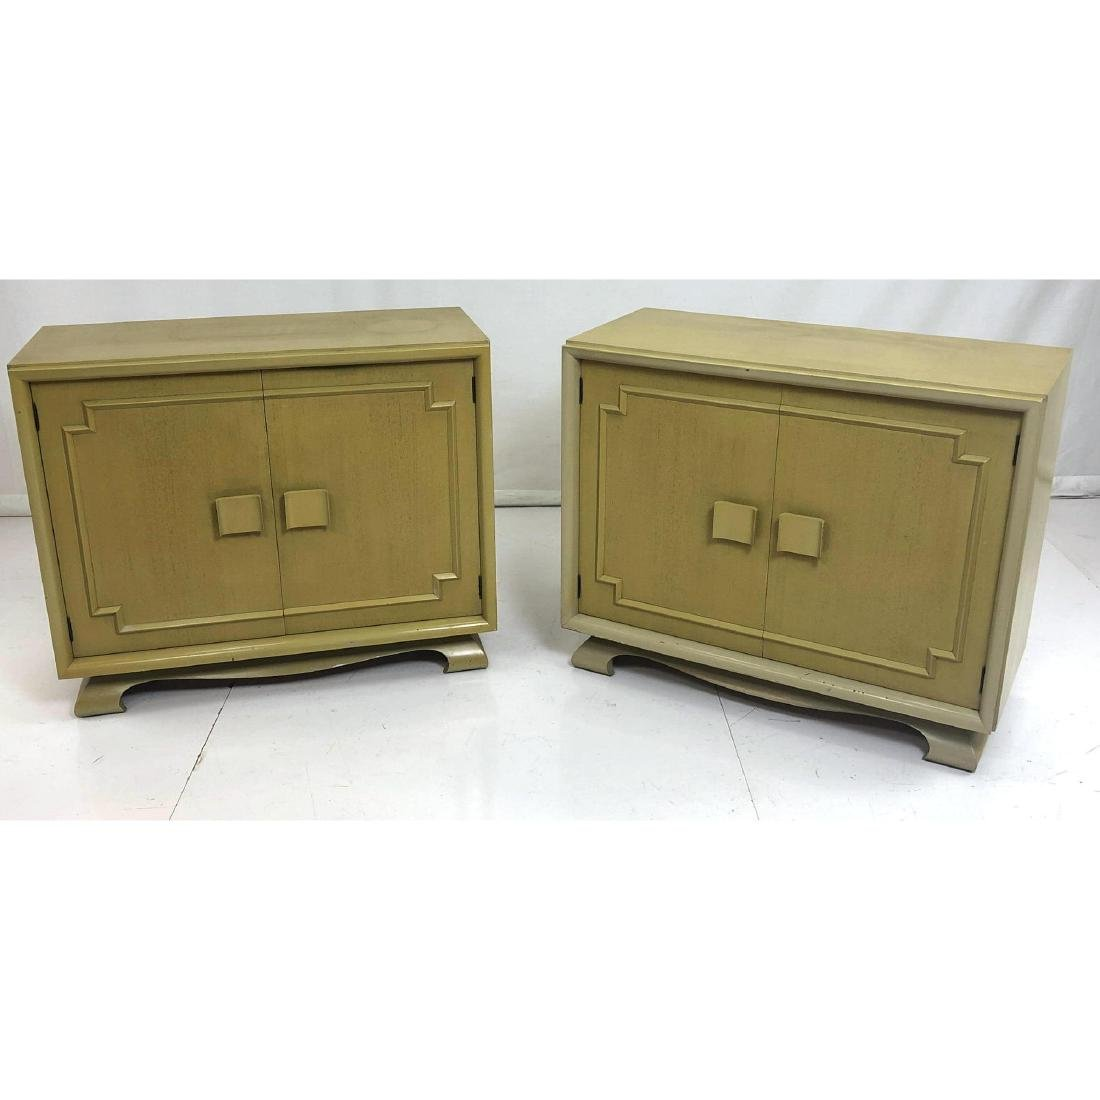 Pr Tall Painted Modernist Bachelors Chests. Stora